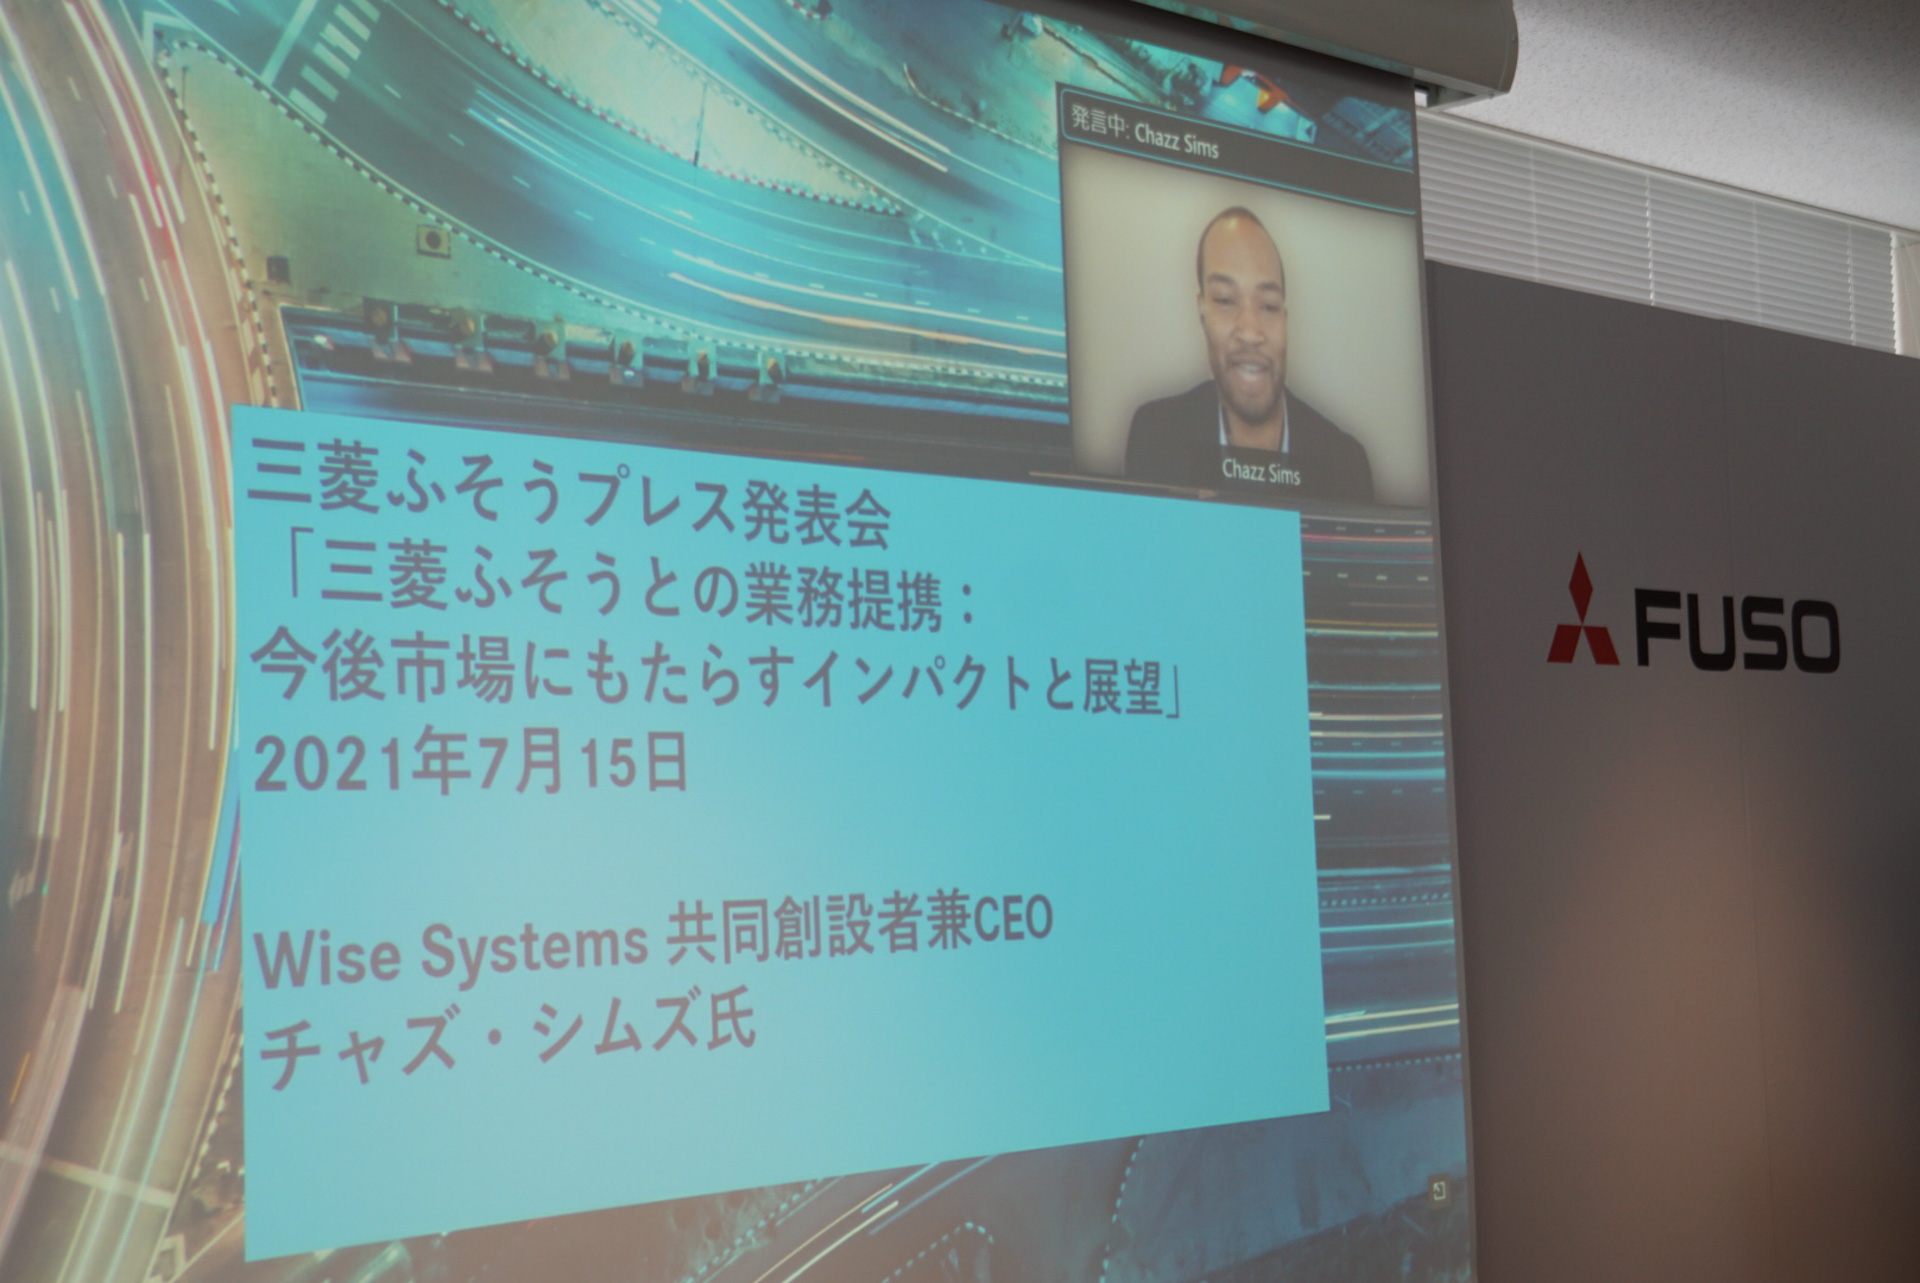 Wise Systems Inc.共同創設者兼CEOのチャズ・シムズ氏